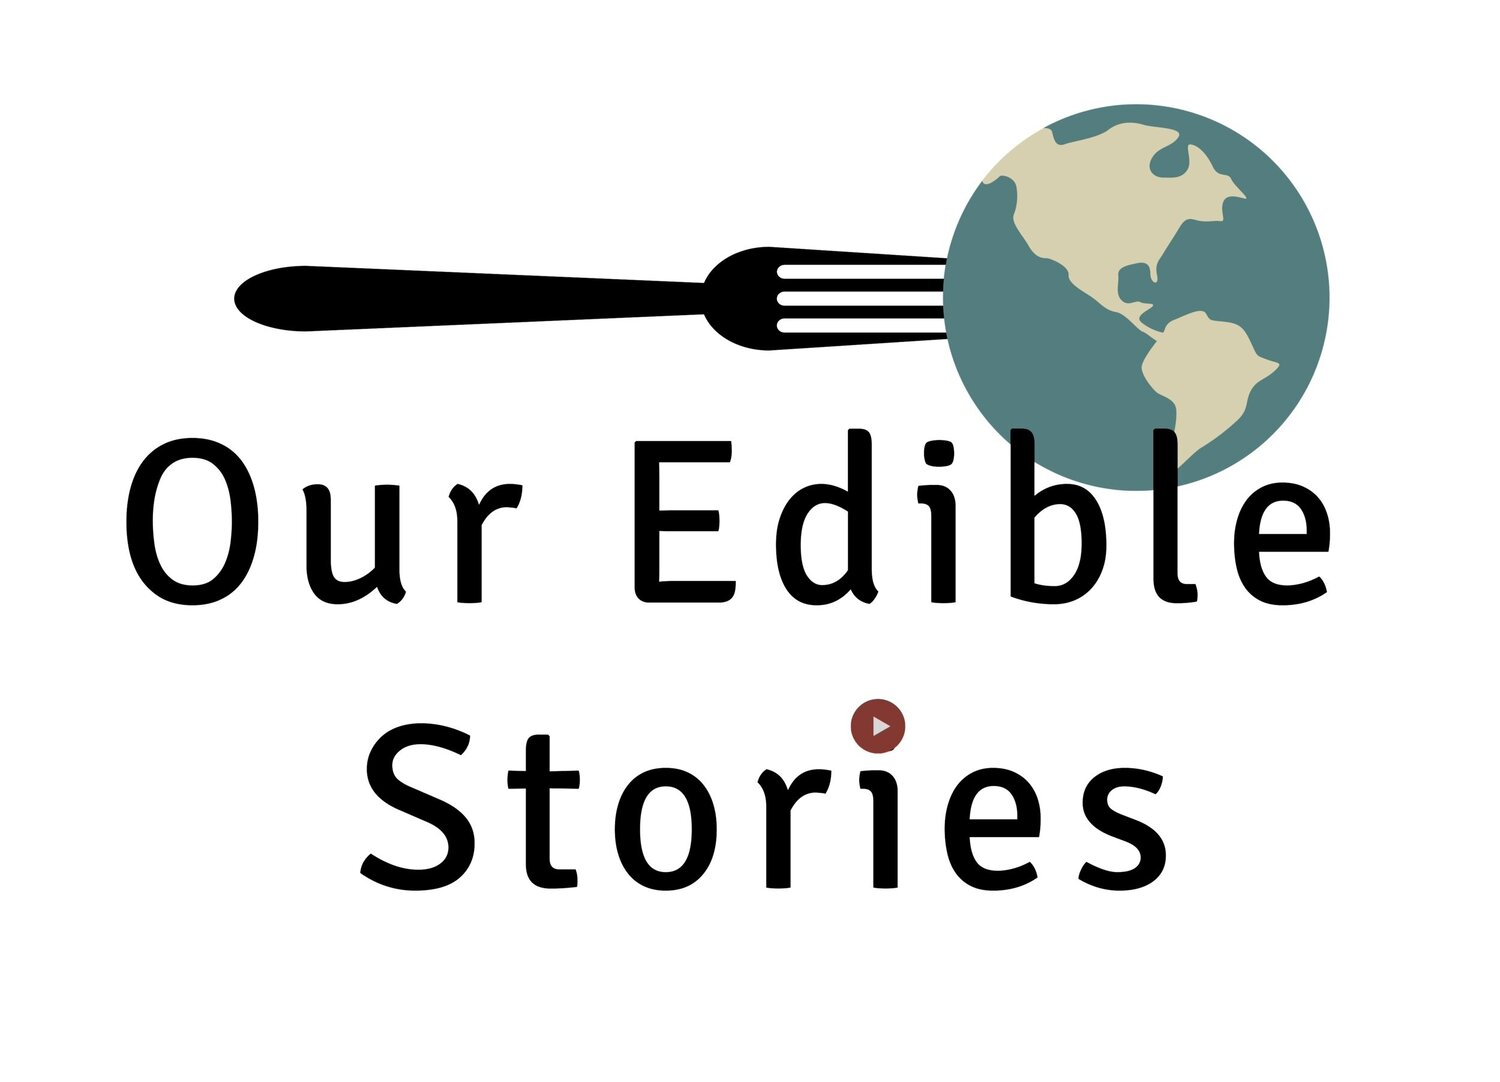 Our  Edible Stories